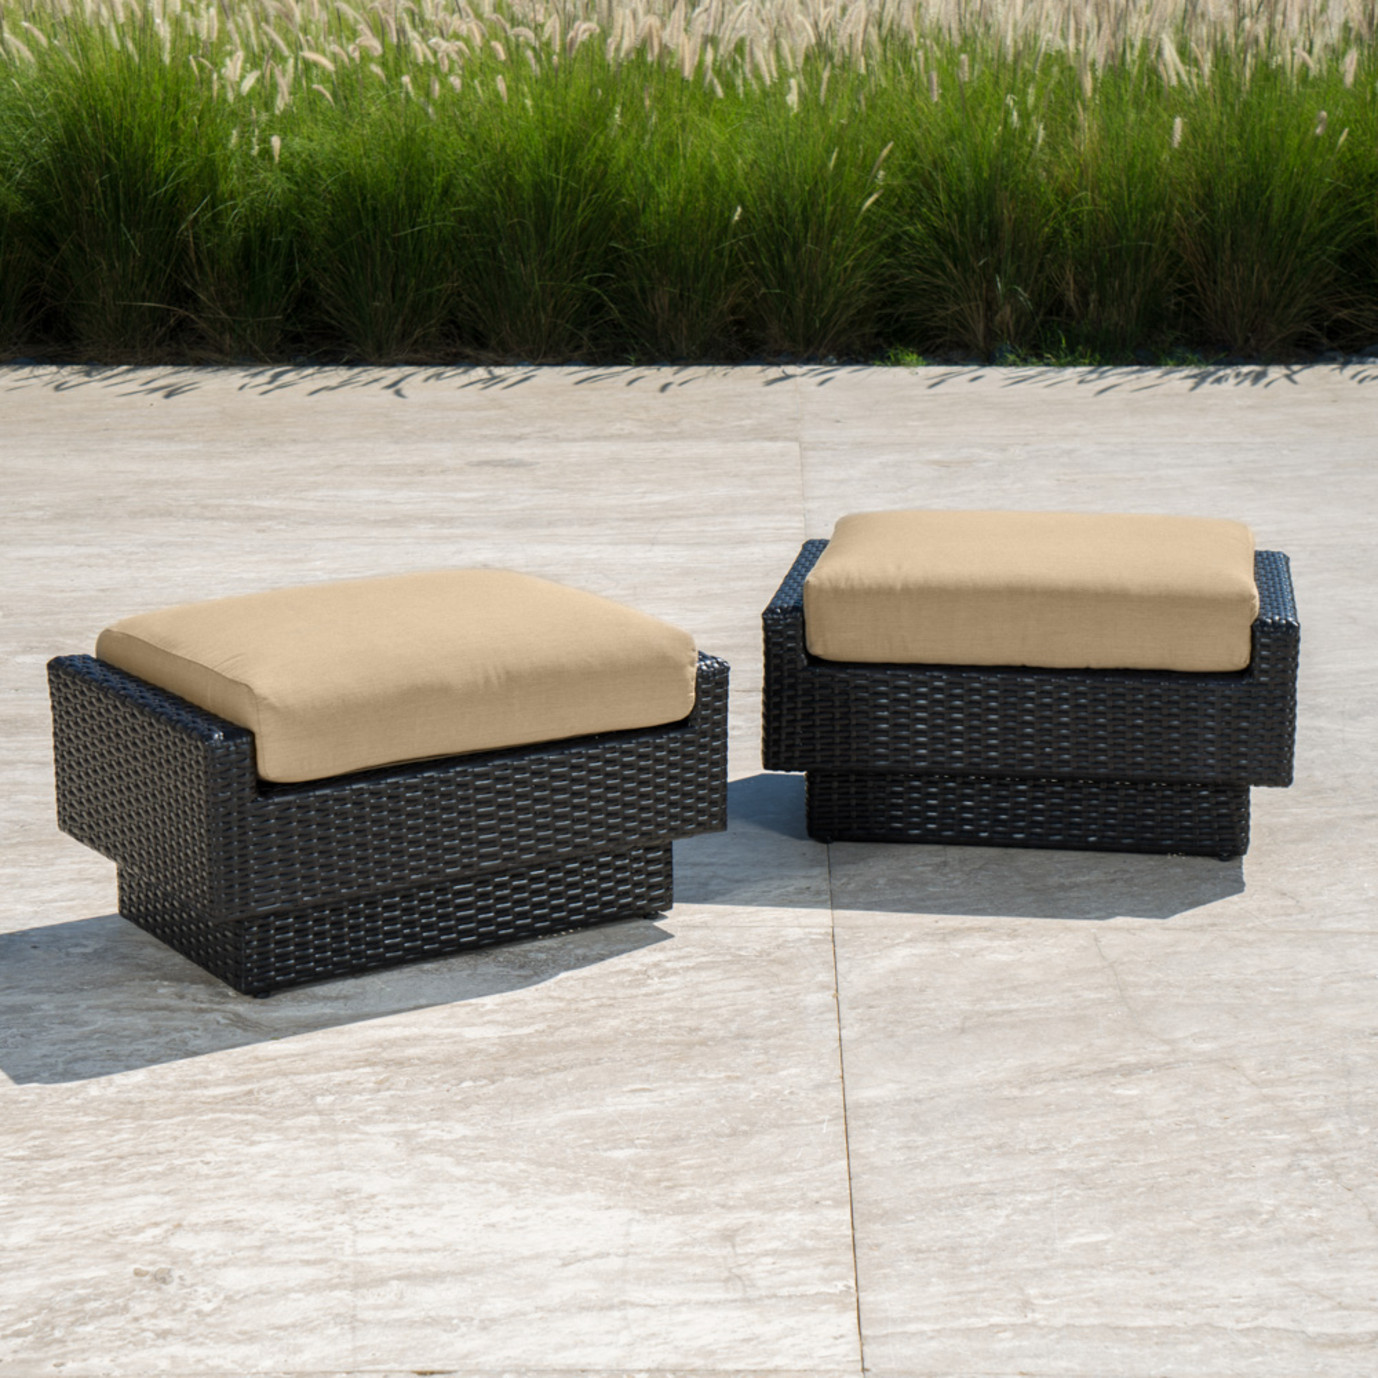 Portofino™ Comfort Club Ottomans - Heather Beige